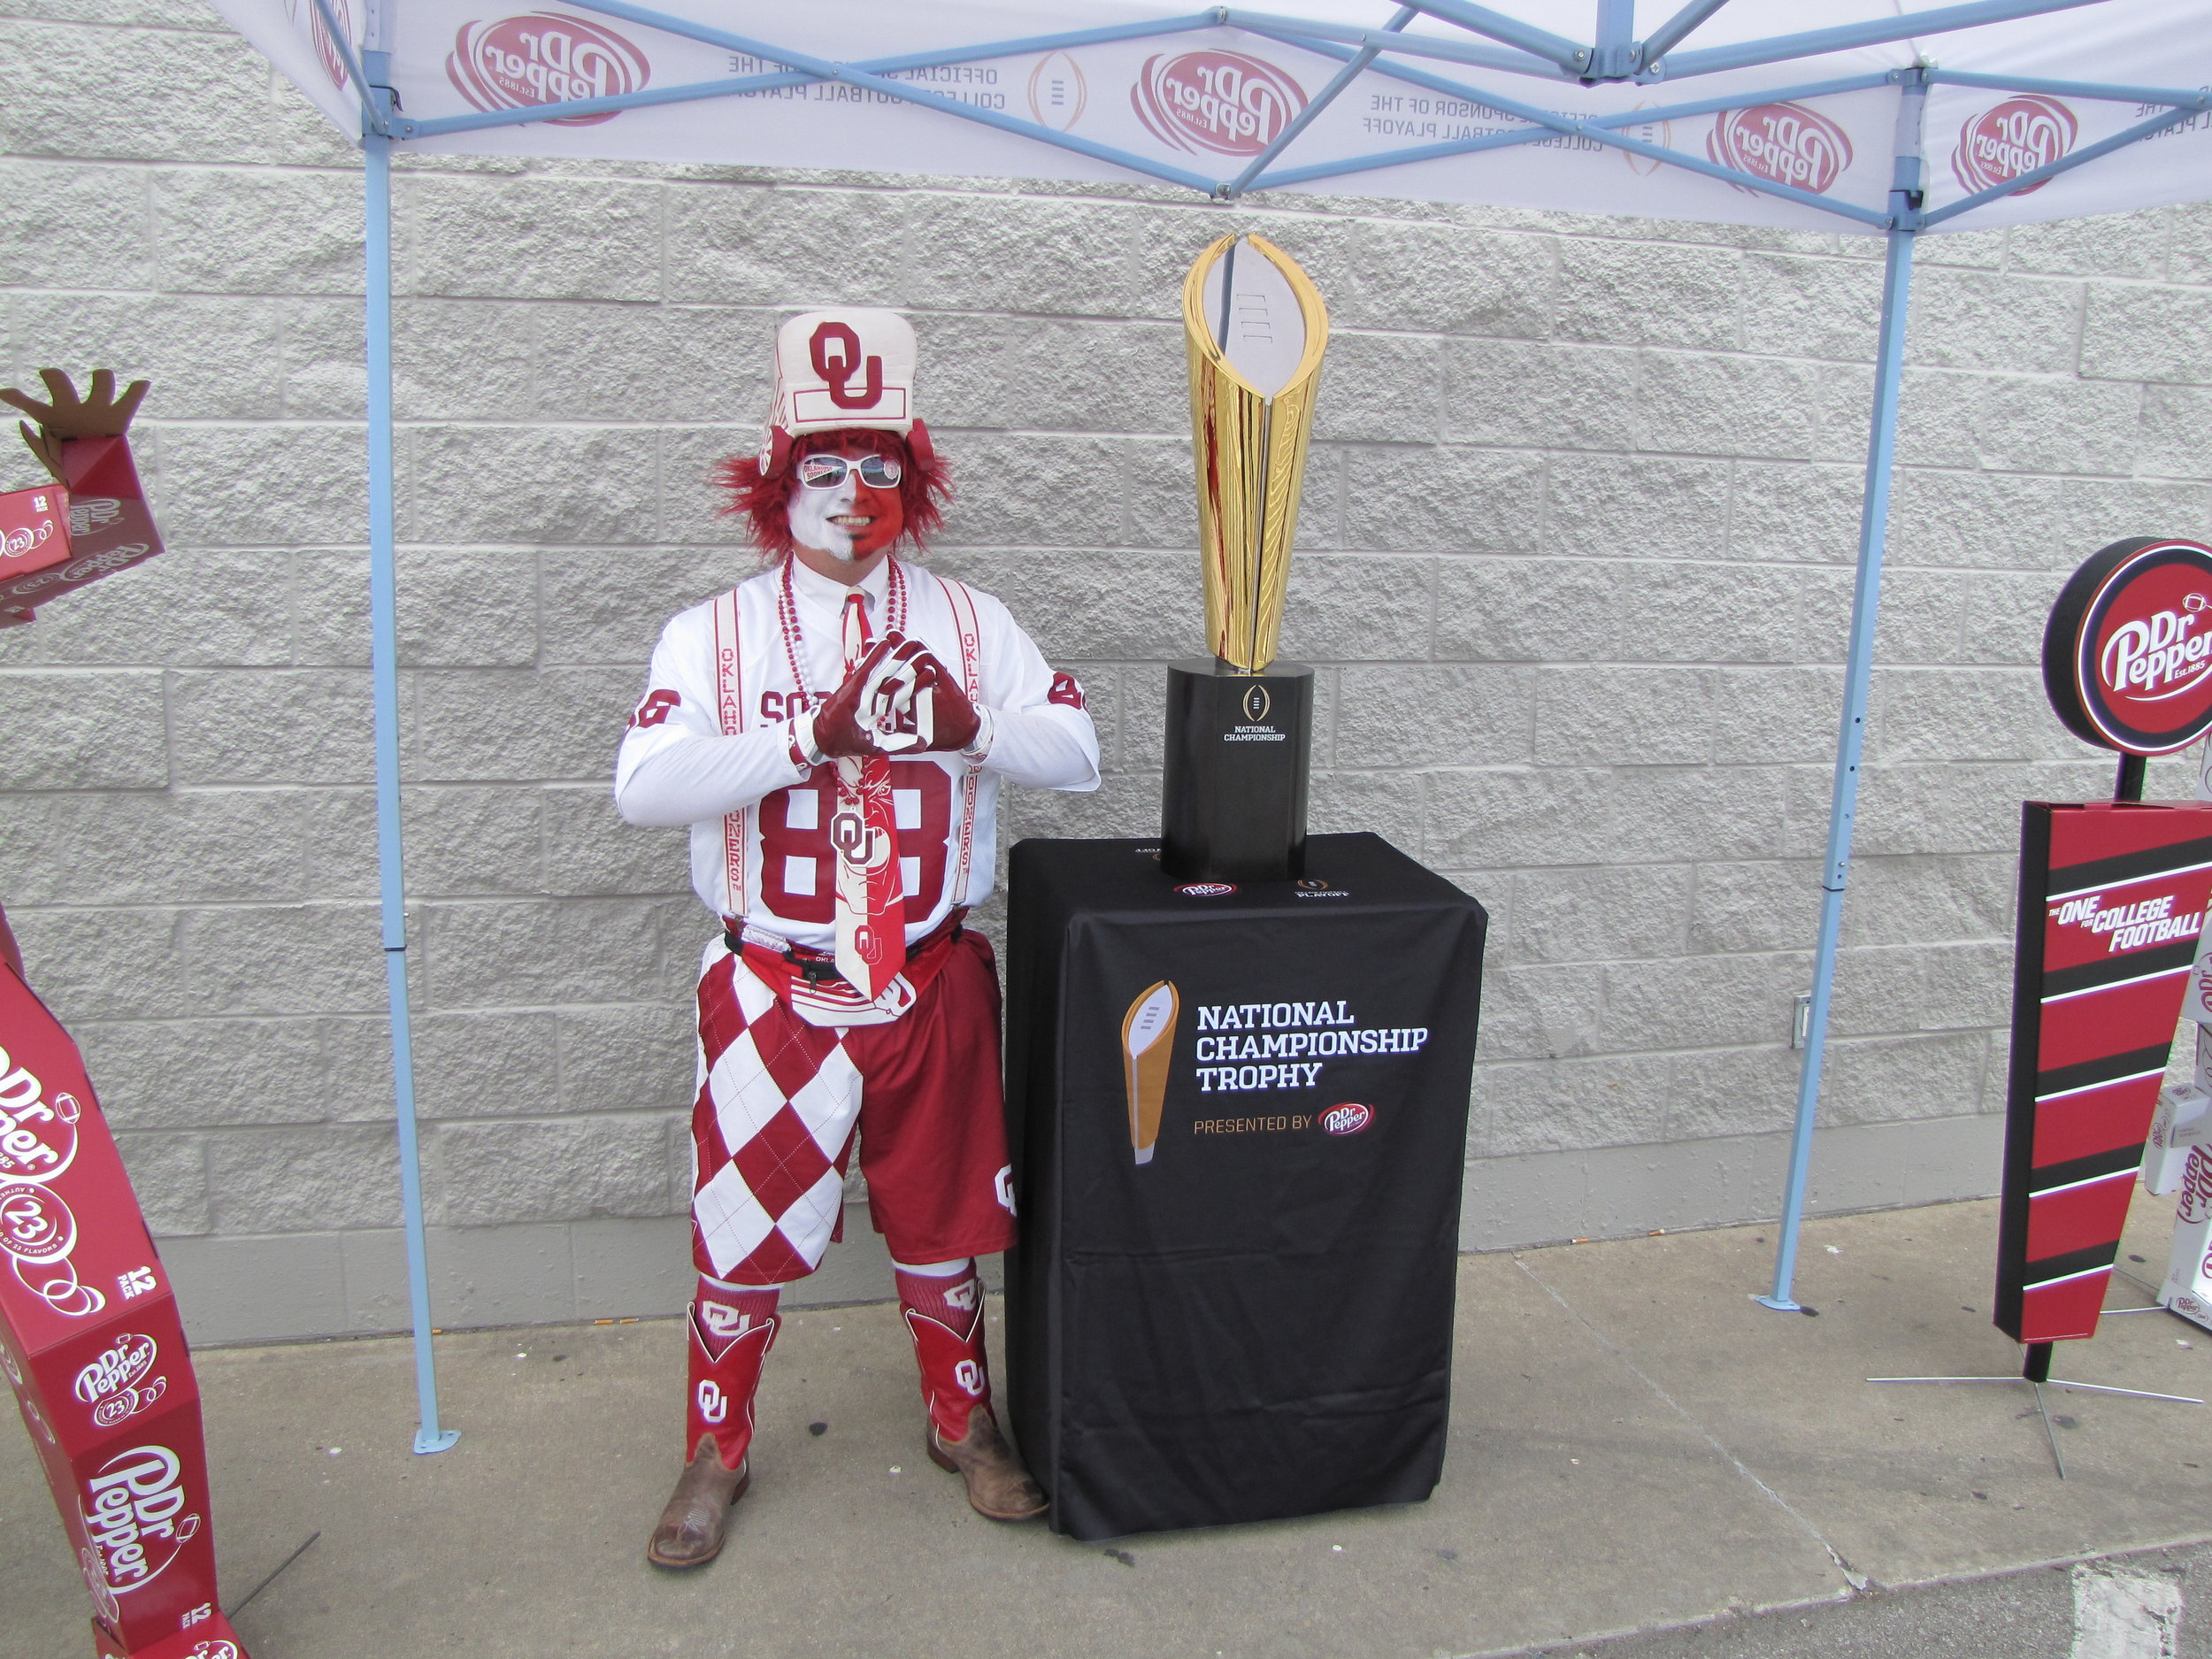 College Football National Championship trophy makes stop in Sand